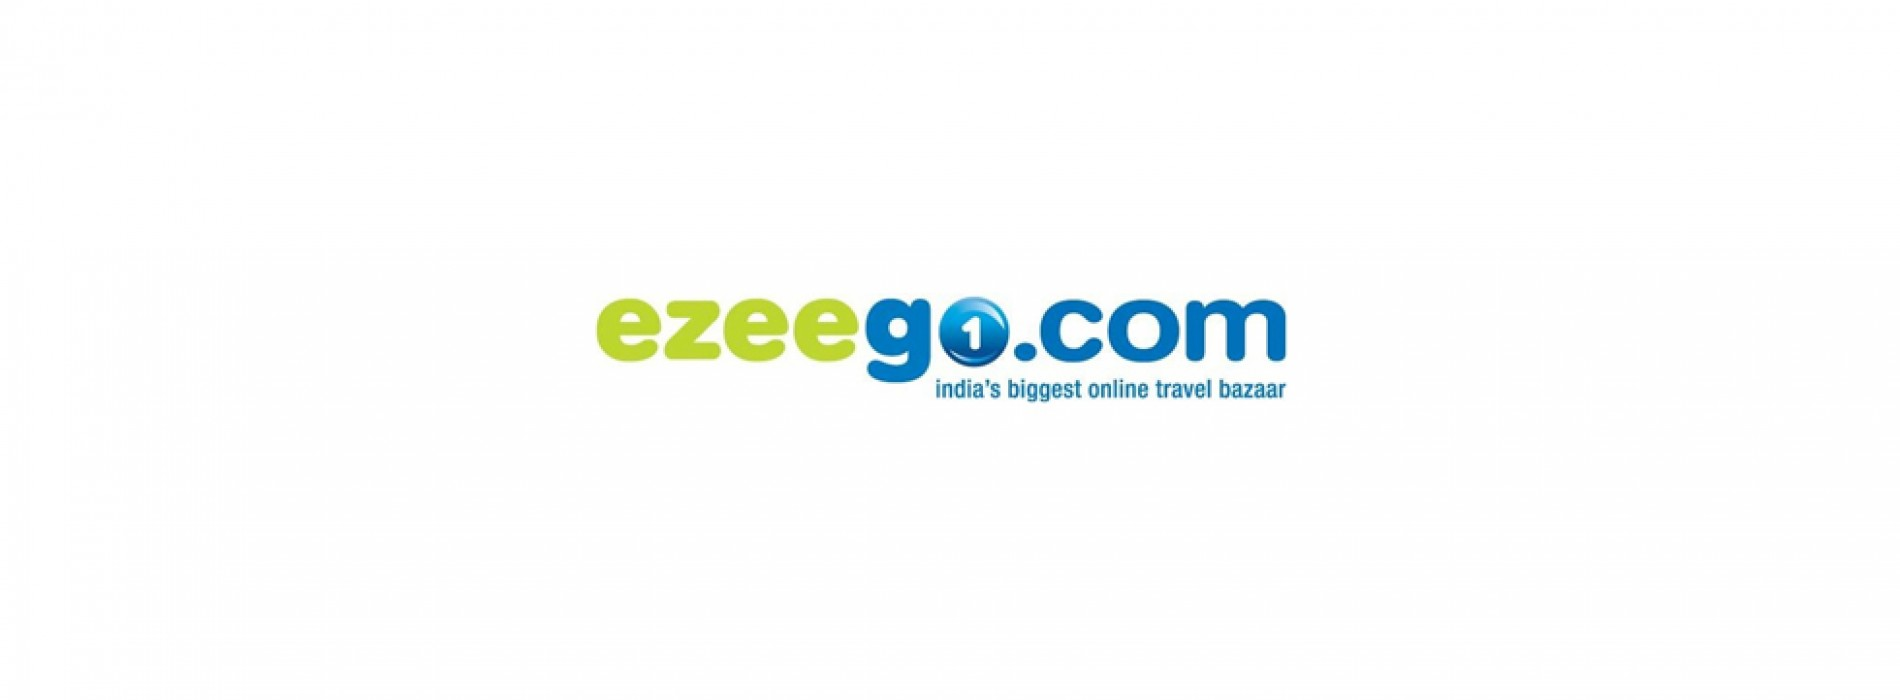 Ezeego1 introduces Advanced B2B Travel Portal for Travel Agents